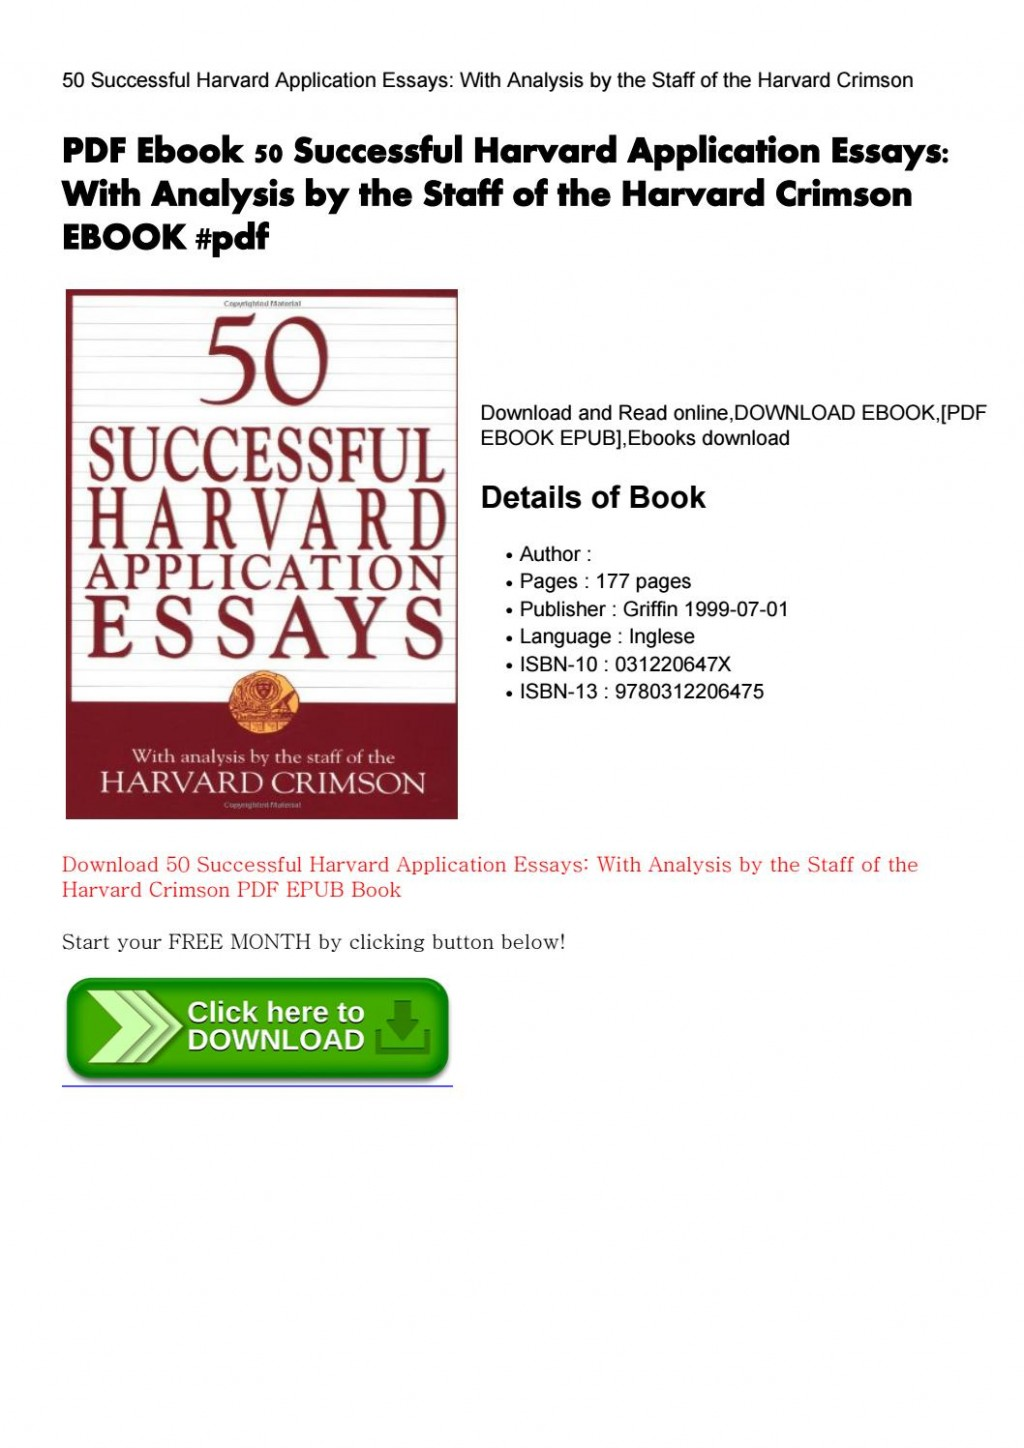 001 Successful Harvard Application Essays Pdf Page 1 Essay Impressive 50 Free 4th Edition Download Large